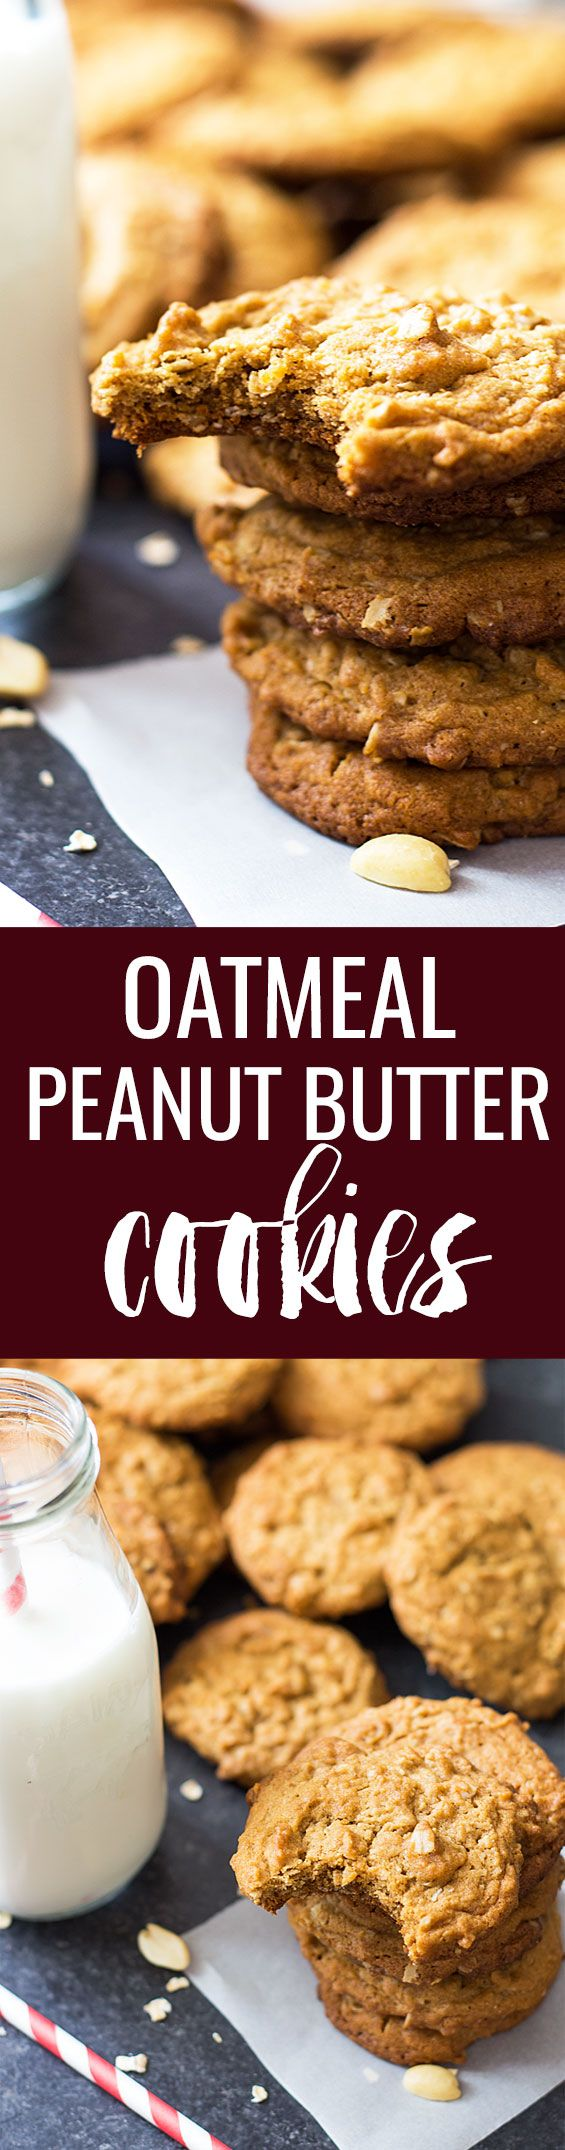 Oatmeal Peanut Butter Cookies | theblondcook.com